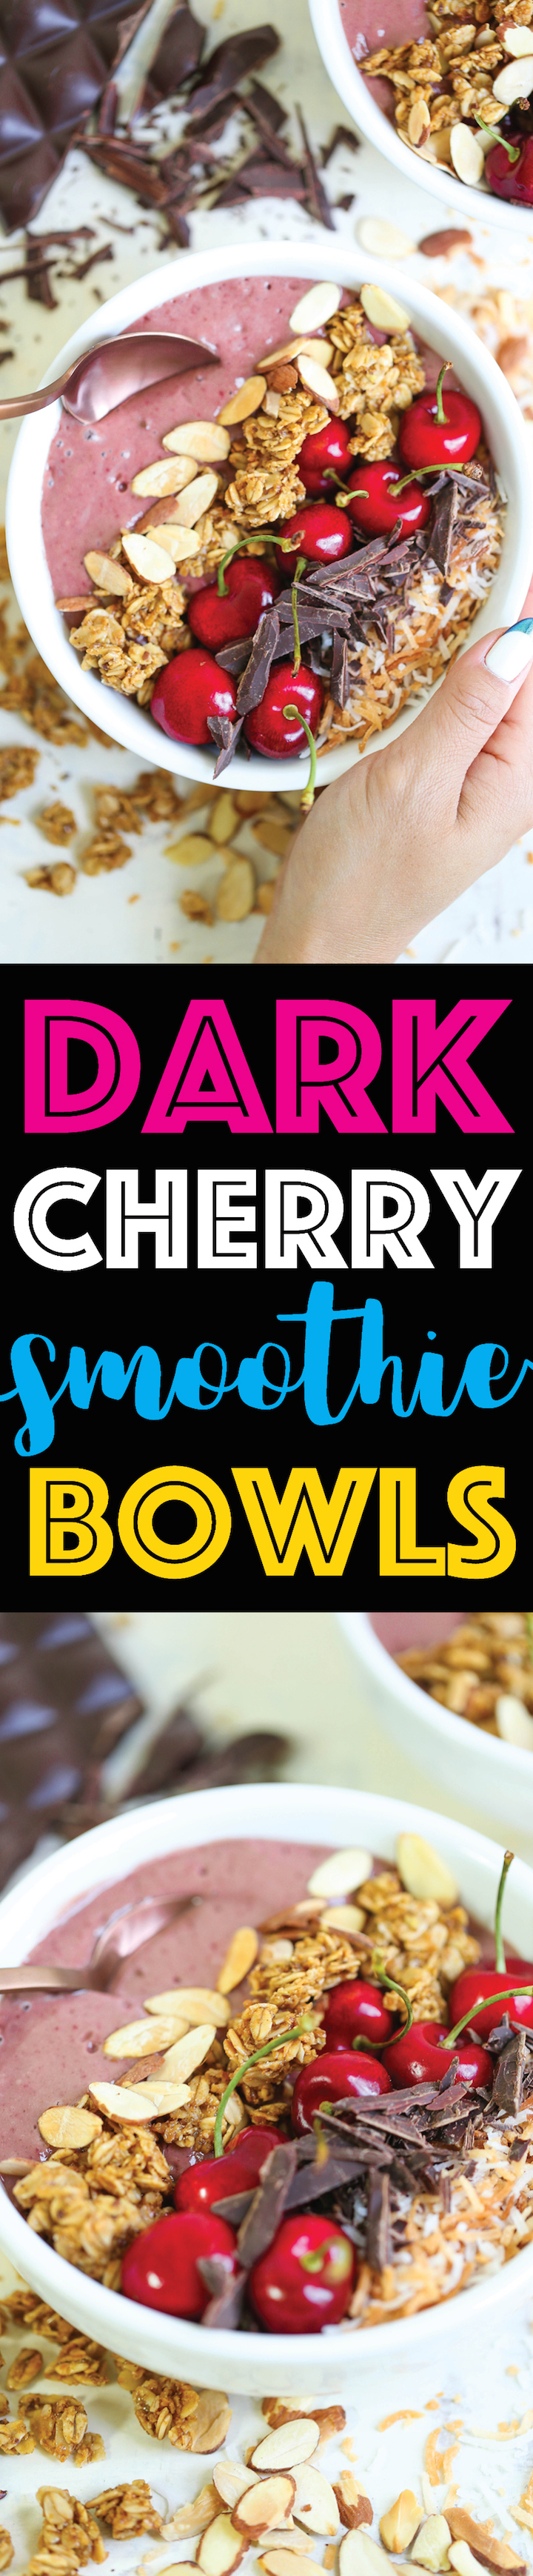 Dark Cherry Smoothie Bowls - A less-than-10-minute breakfast that hasn't been any easier, healthier or quicker! Nutrient-rich and budget-friendly!!!